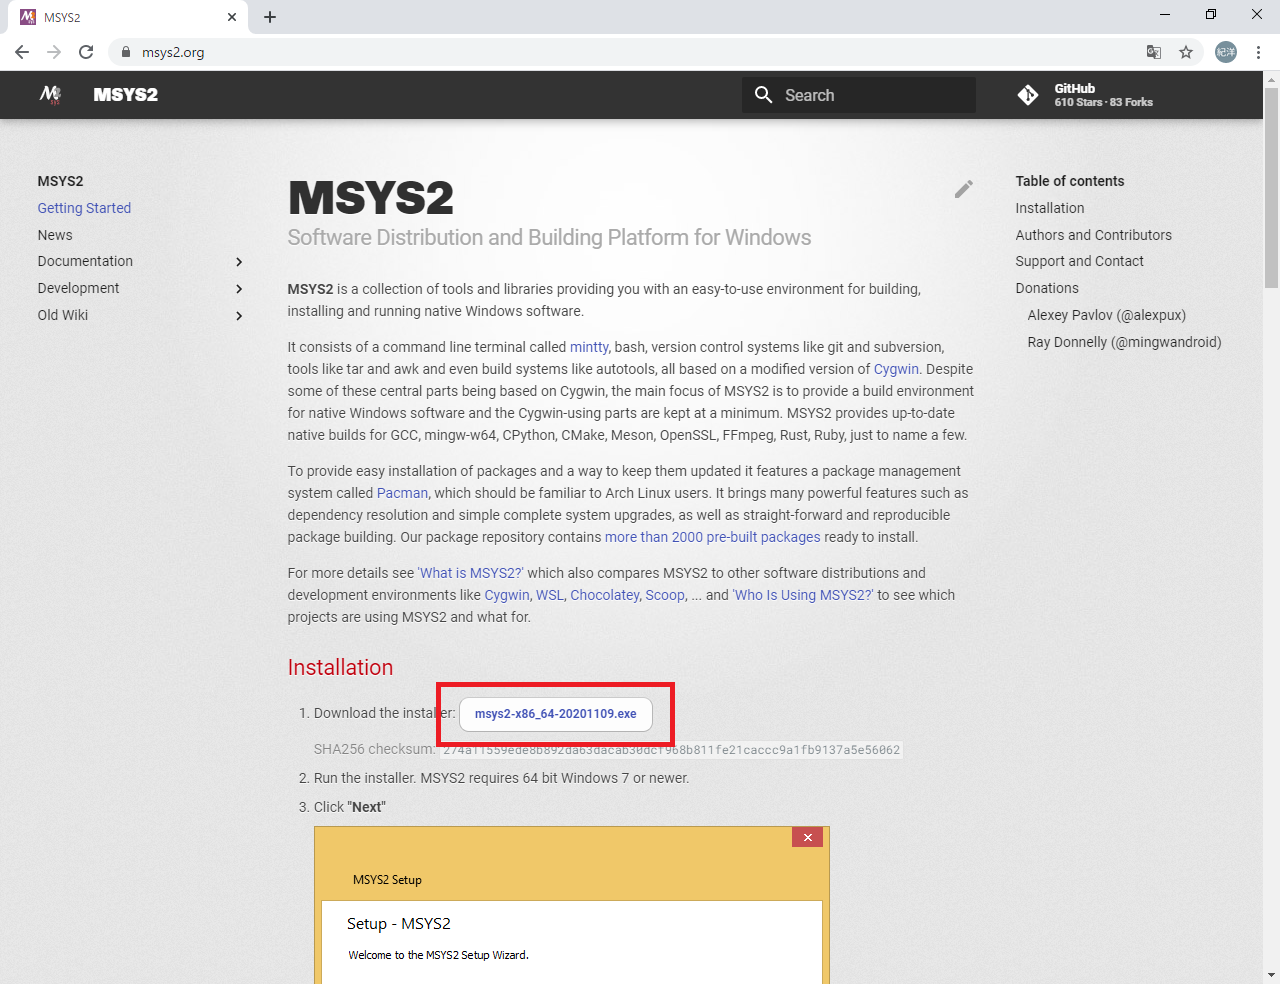 msys2.png